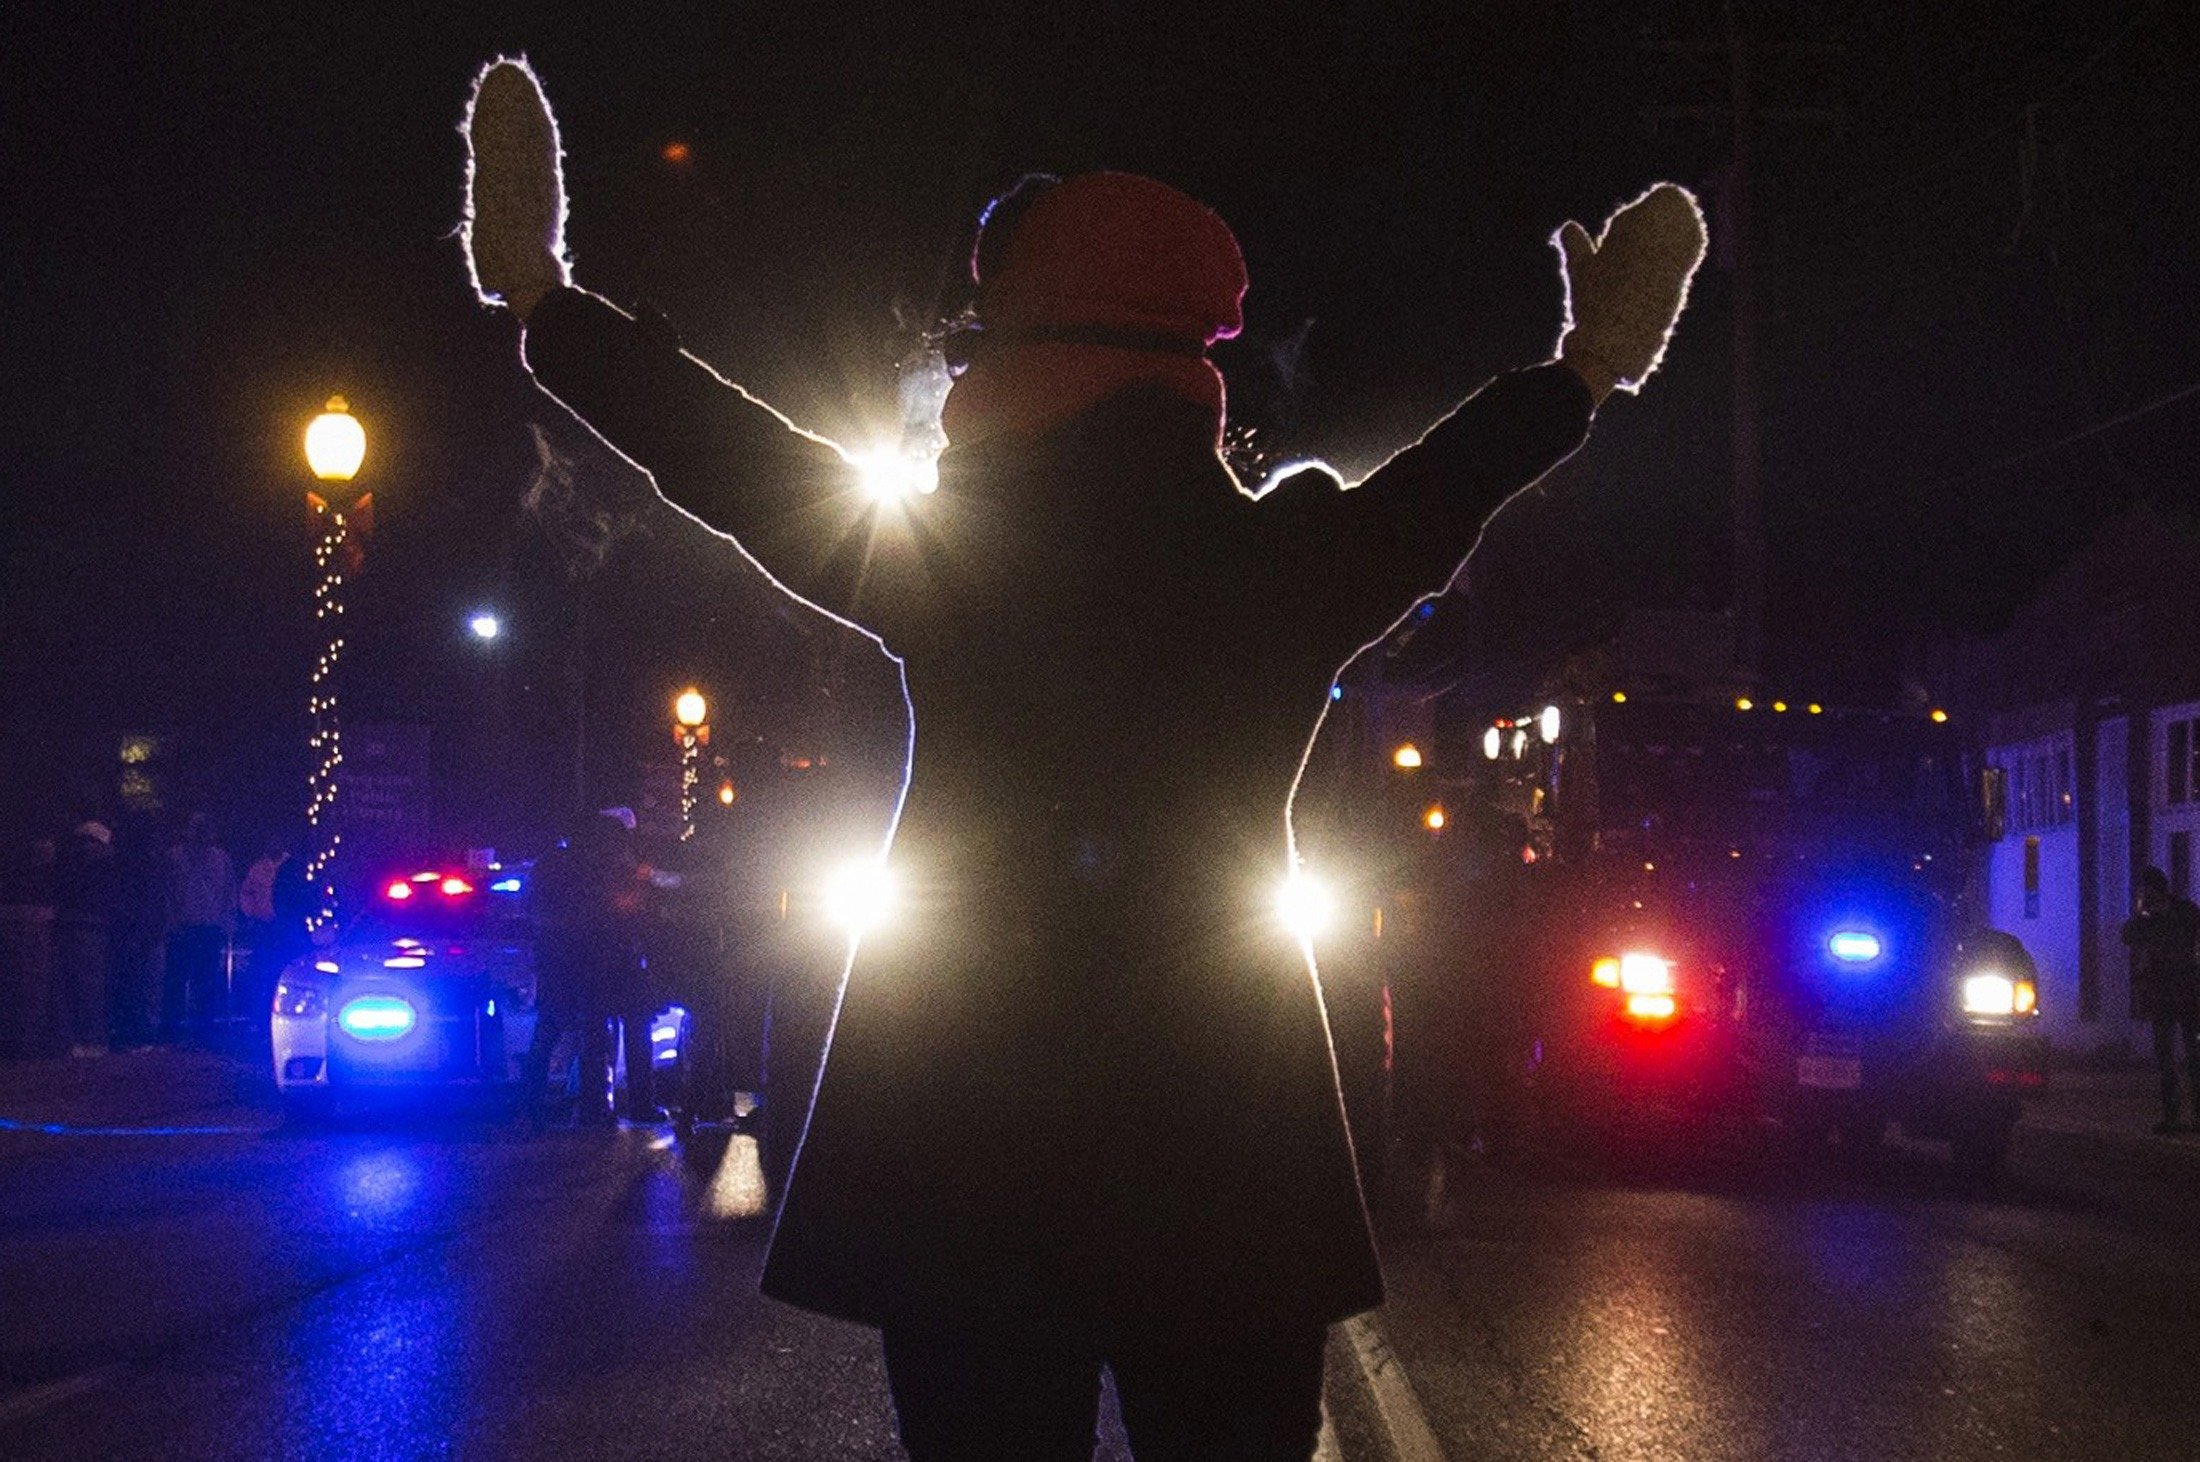 A female protester raises her hands while blocking police cars in Ferguson, Mo. on Nov. 25, 2014.